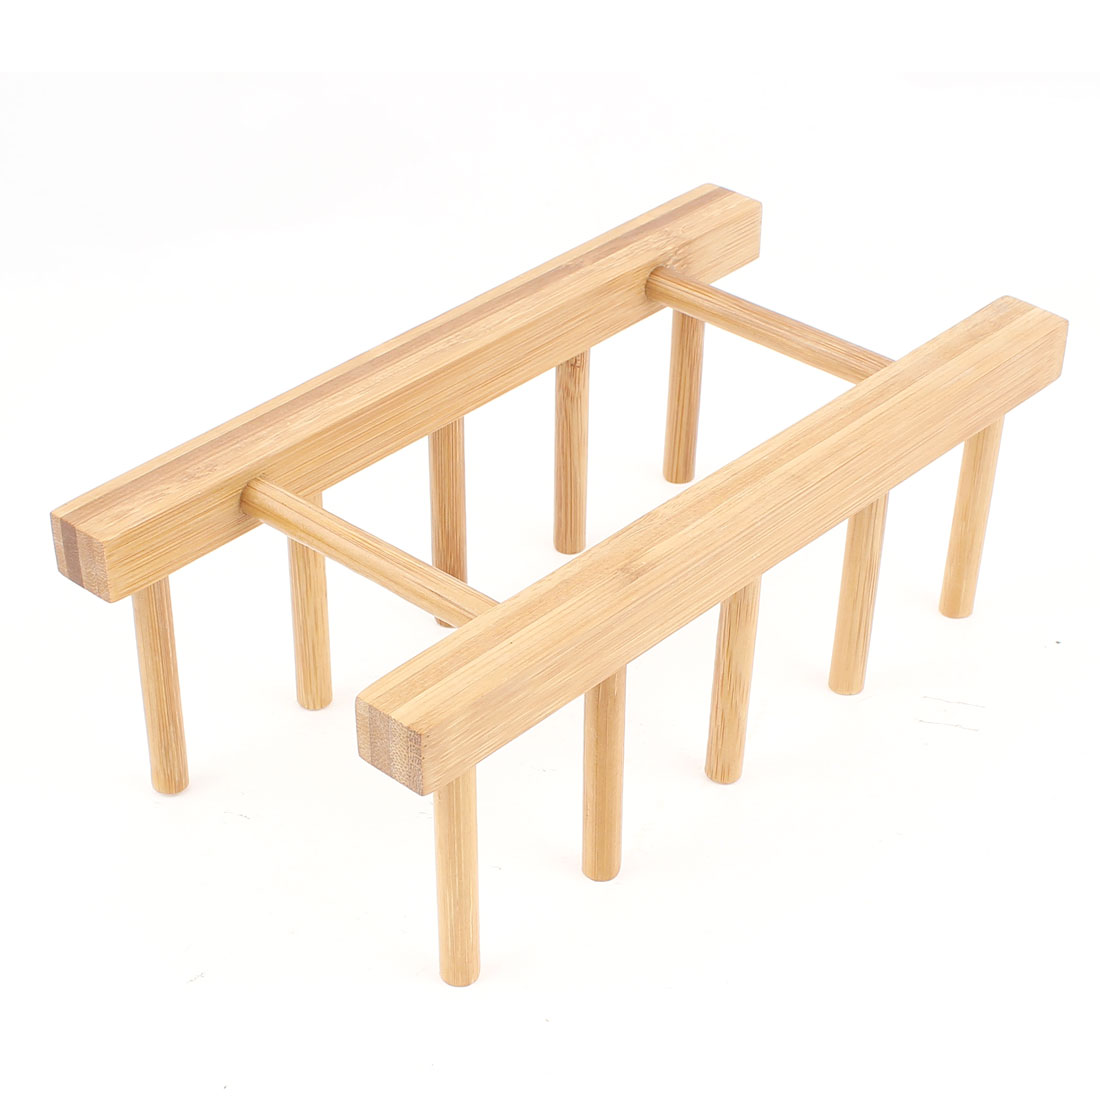 Kitchen Bamboo Dish Drainer Holder Plate Drying Rack Stand DIY Tool